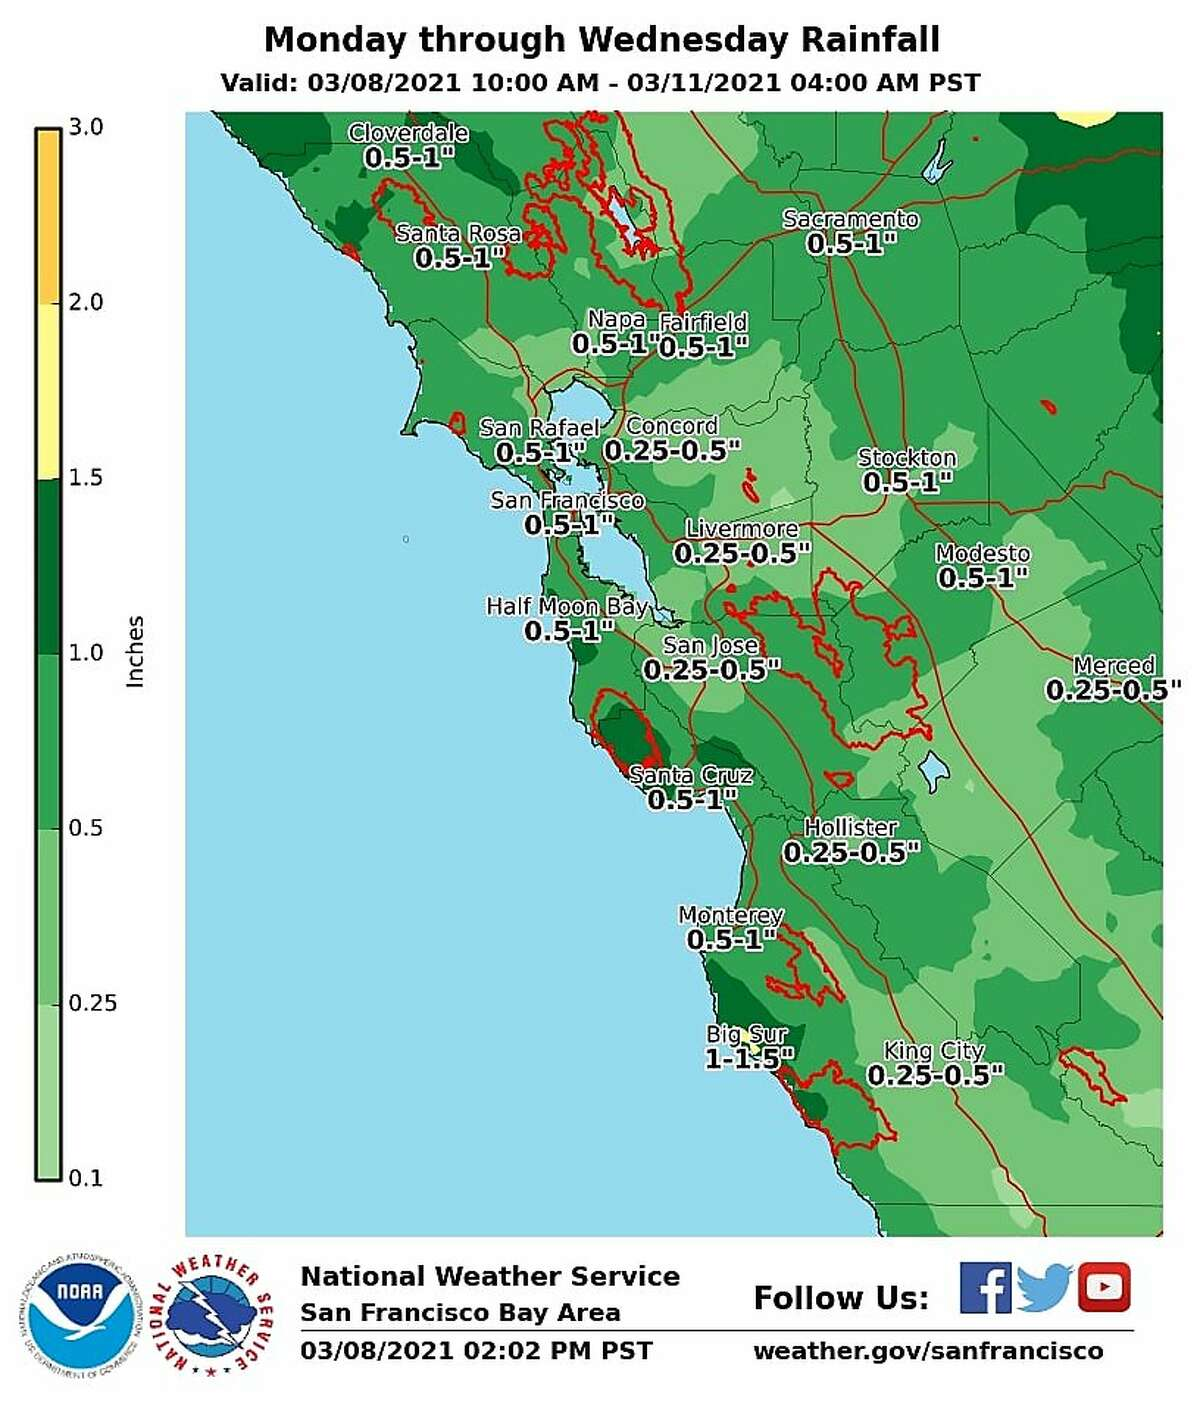 Most of the Bay Area will receive up to half an inch of rain, with higher elevations receiving up to an inch of rainfall.